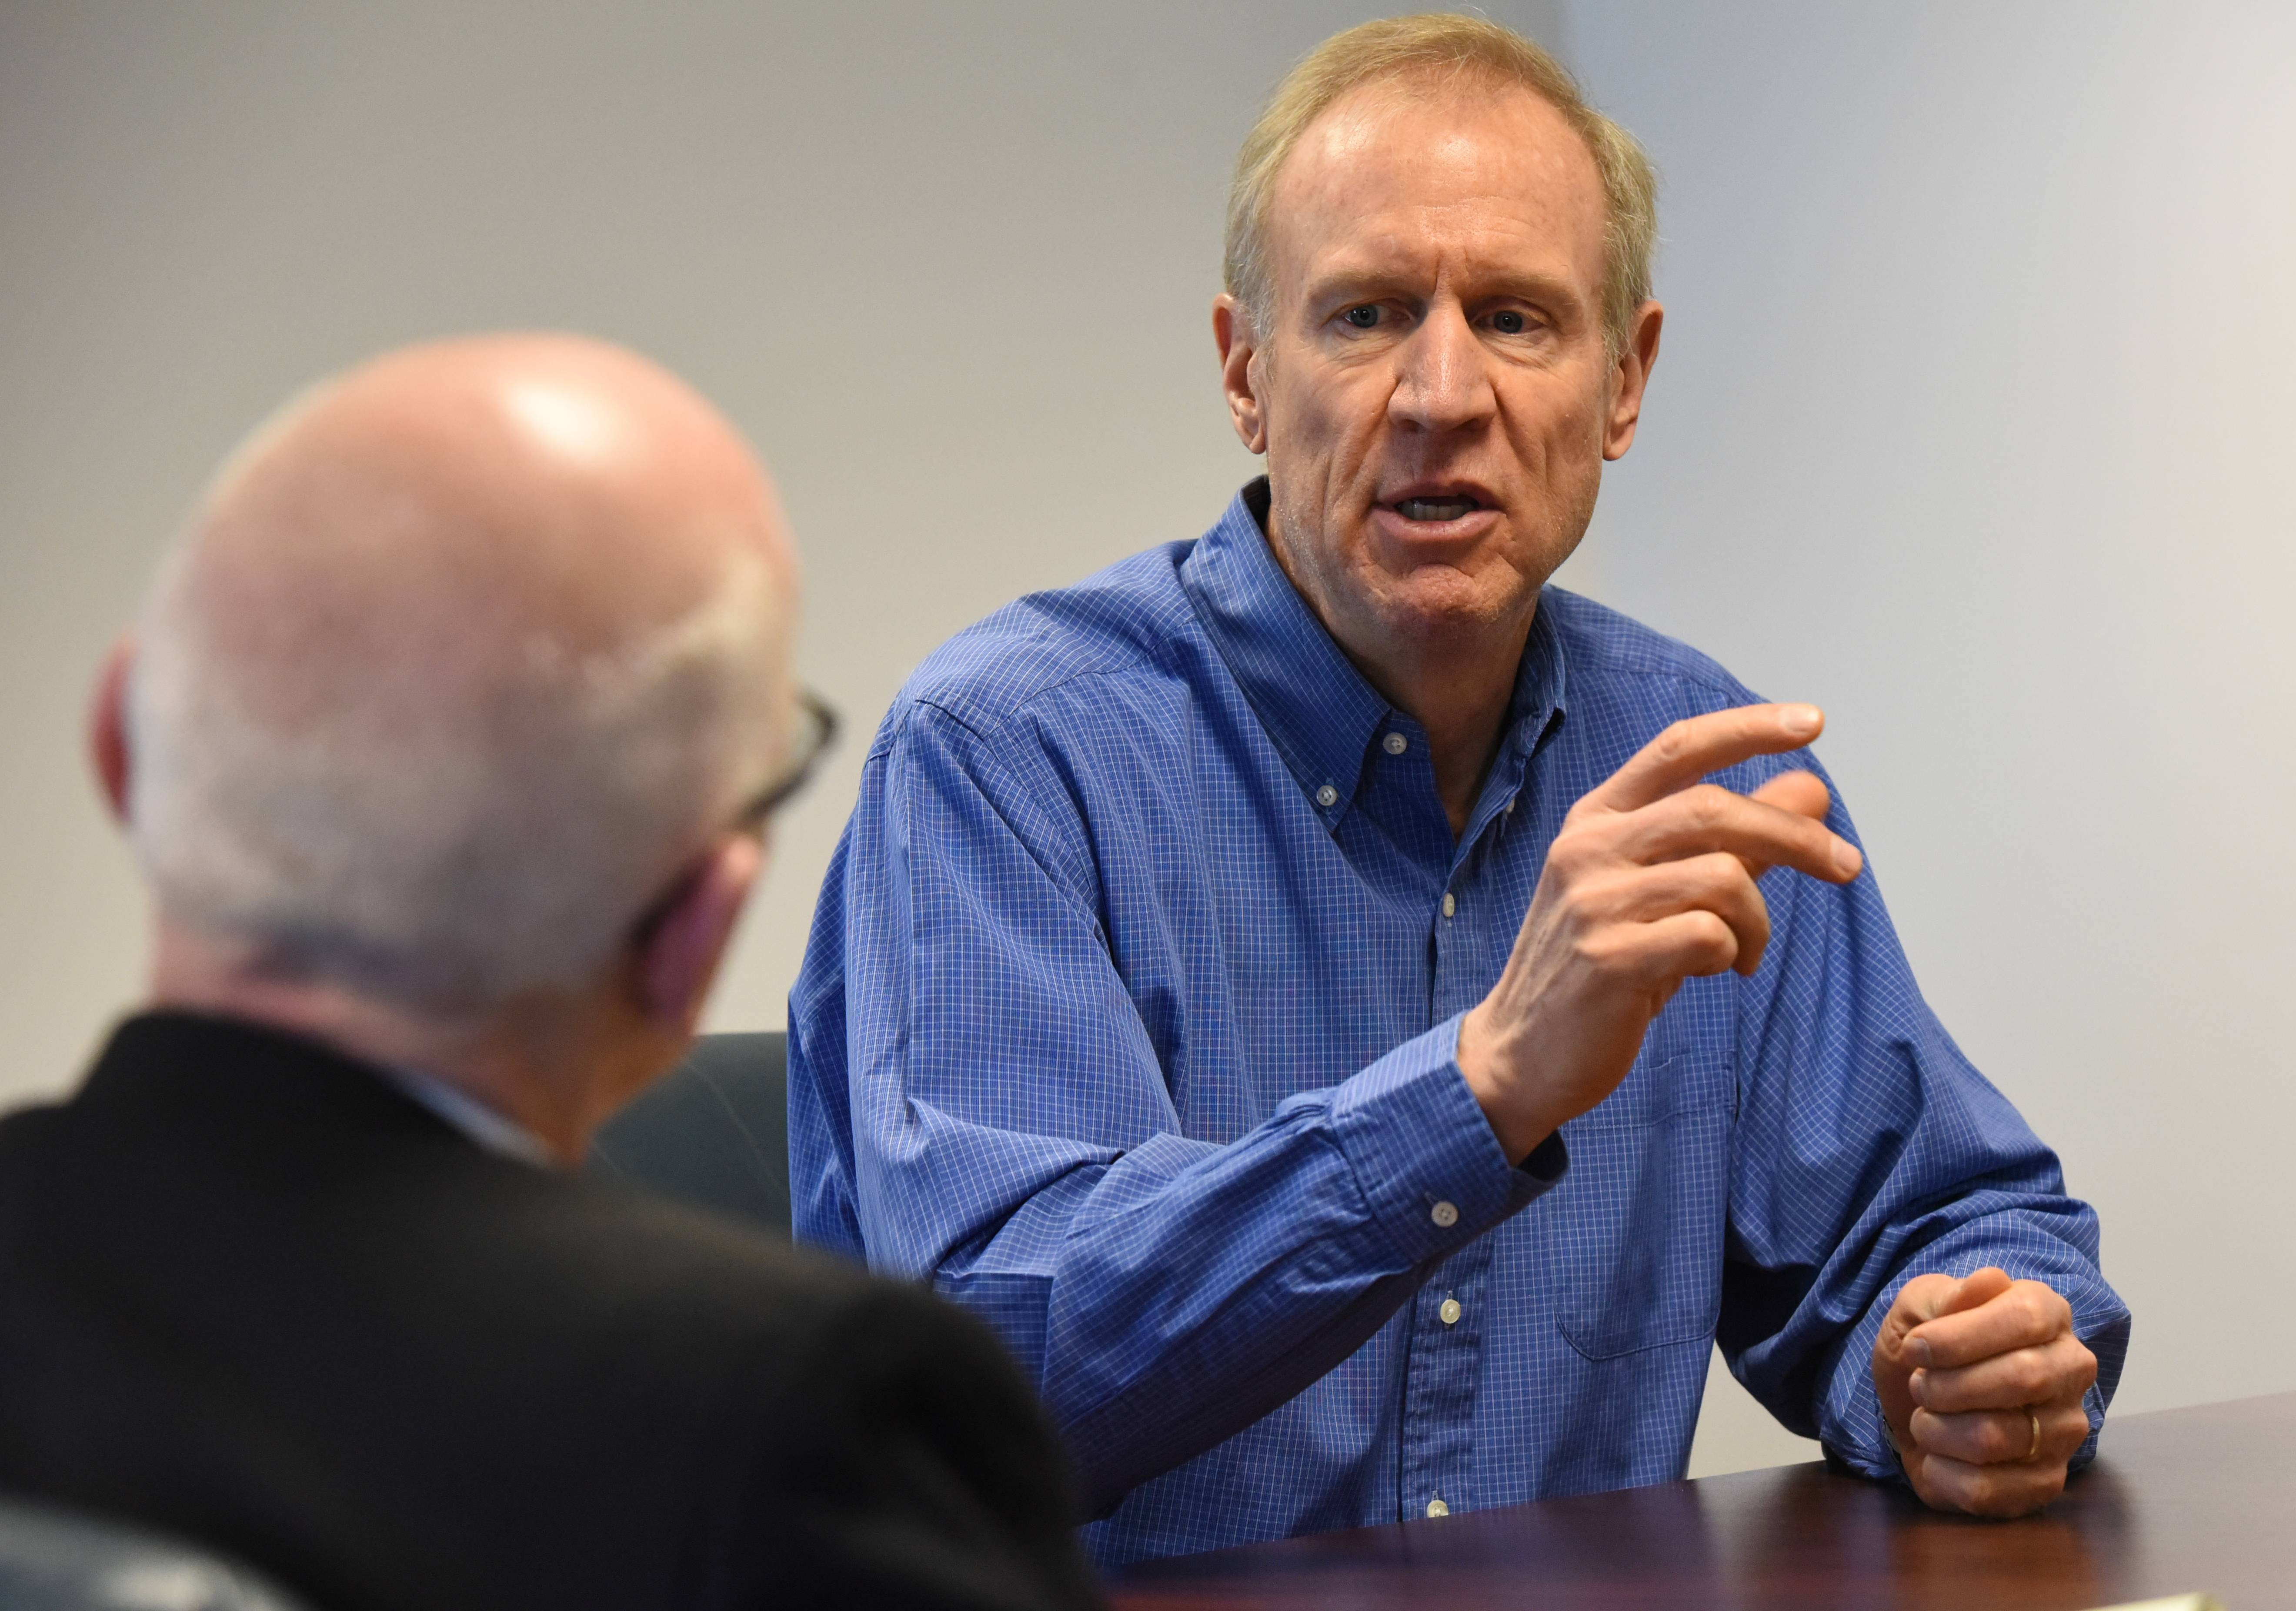 Rauner will urge Trump administration against full Obamacare repeal